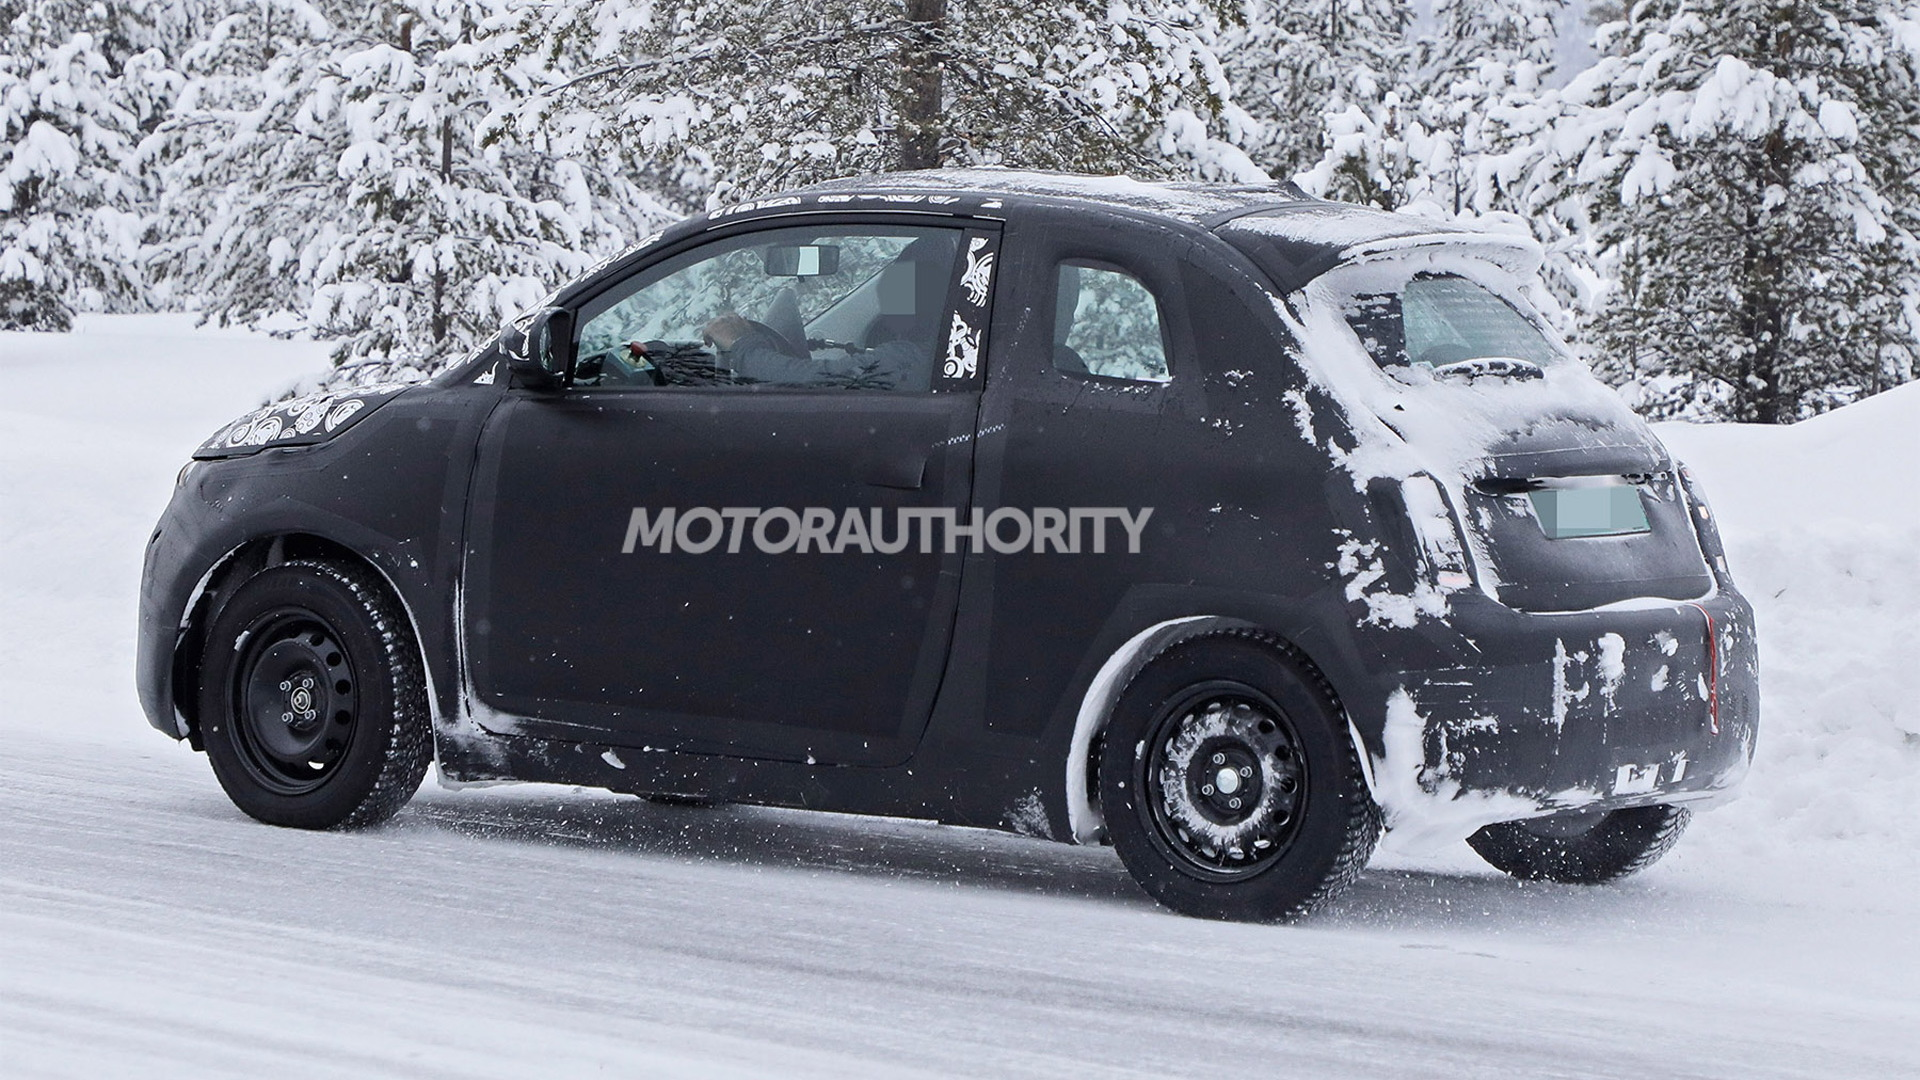 2021 Fiat 500e spy shots - Photo credit: S. Baldauf/SB-Medien